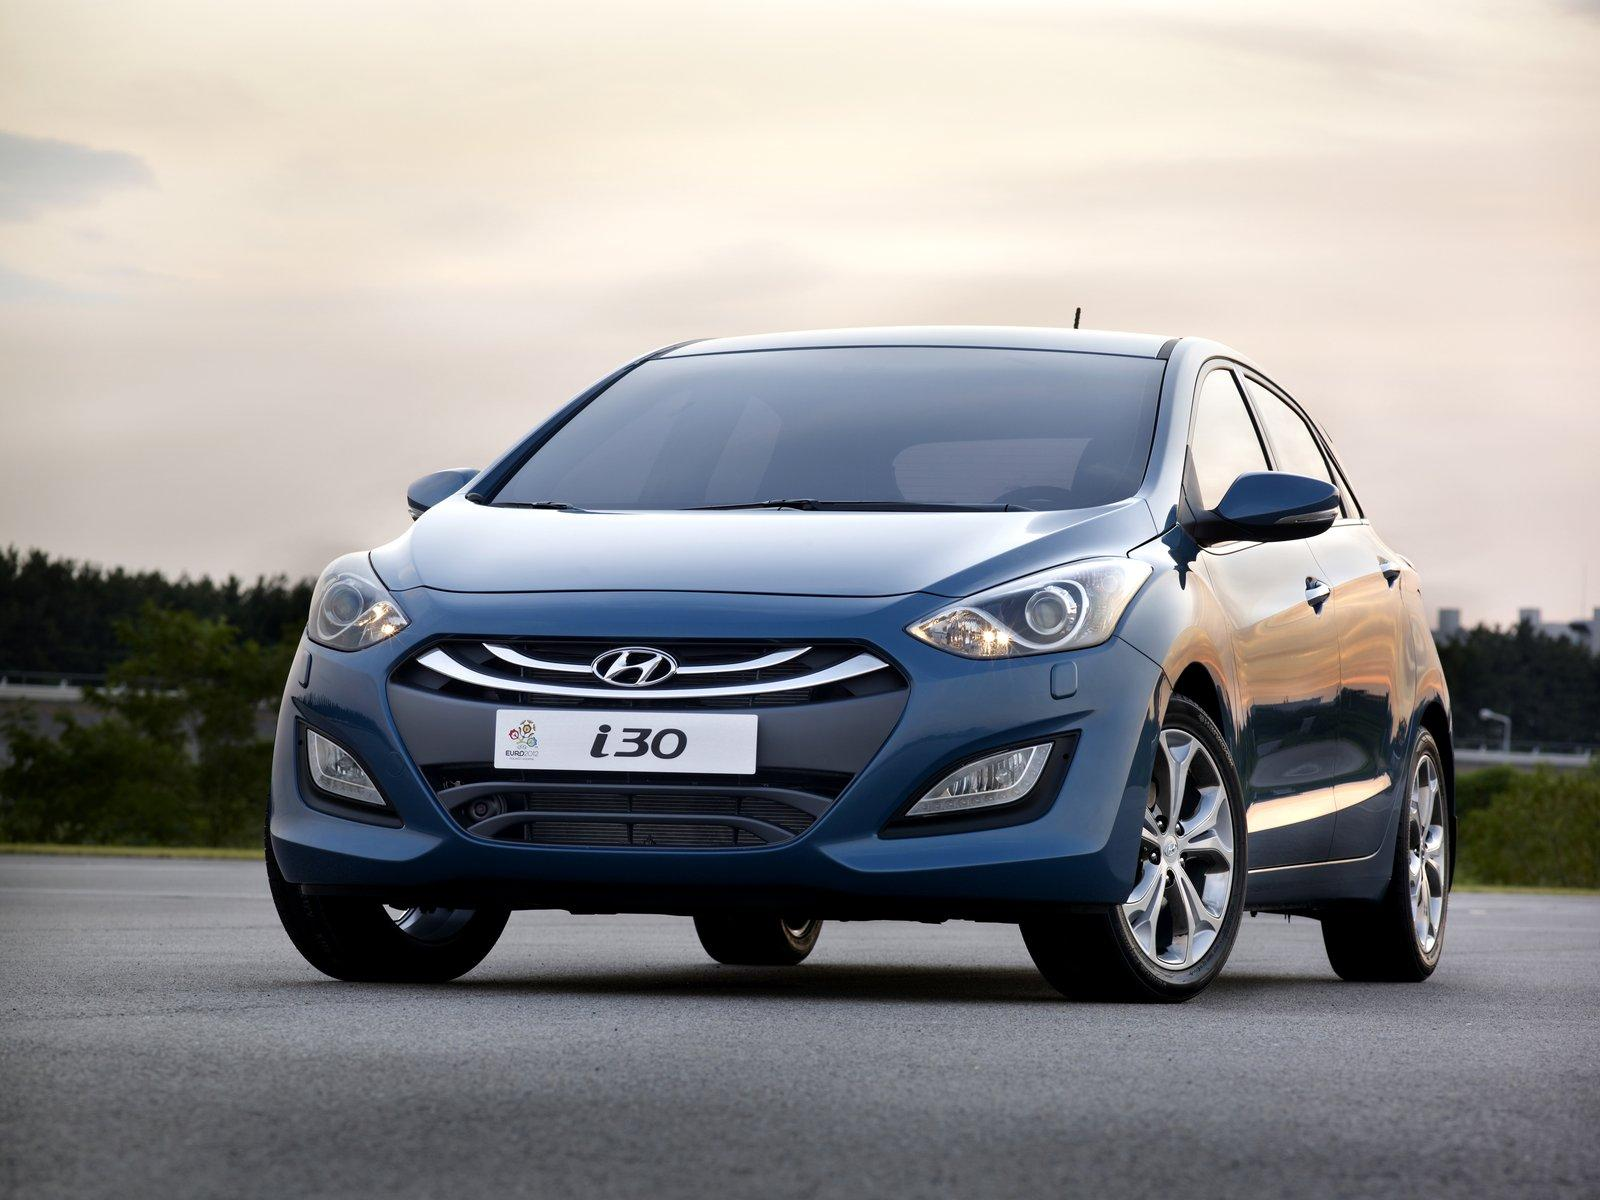 2012 hyundai i30 elantra touring pictures photos wallpapers top speed. Black Bedroom Furniture Sets. Home Design Ideas